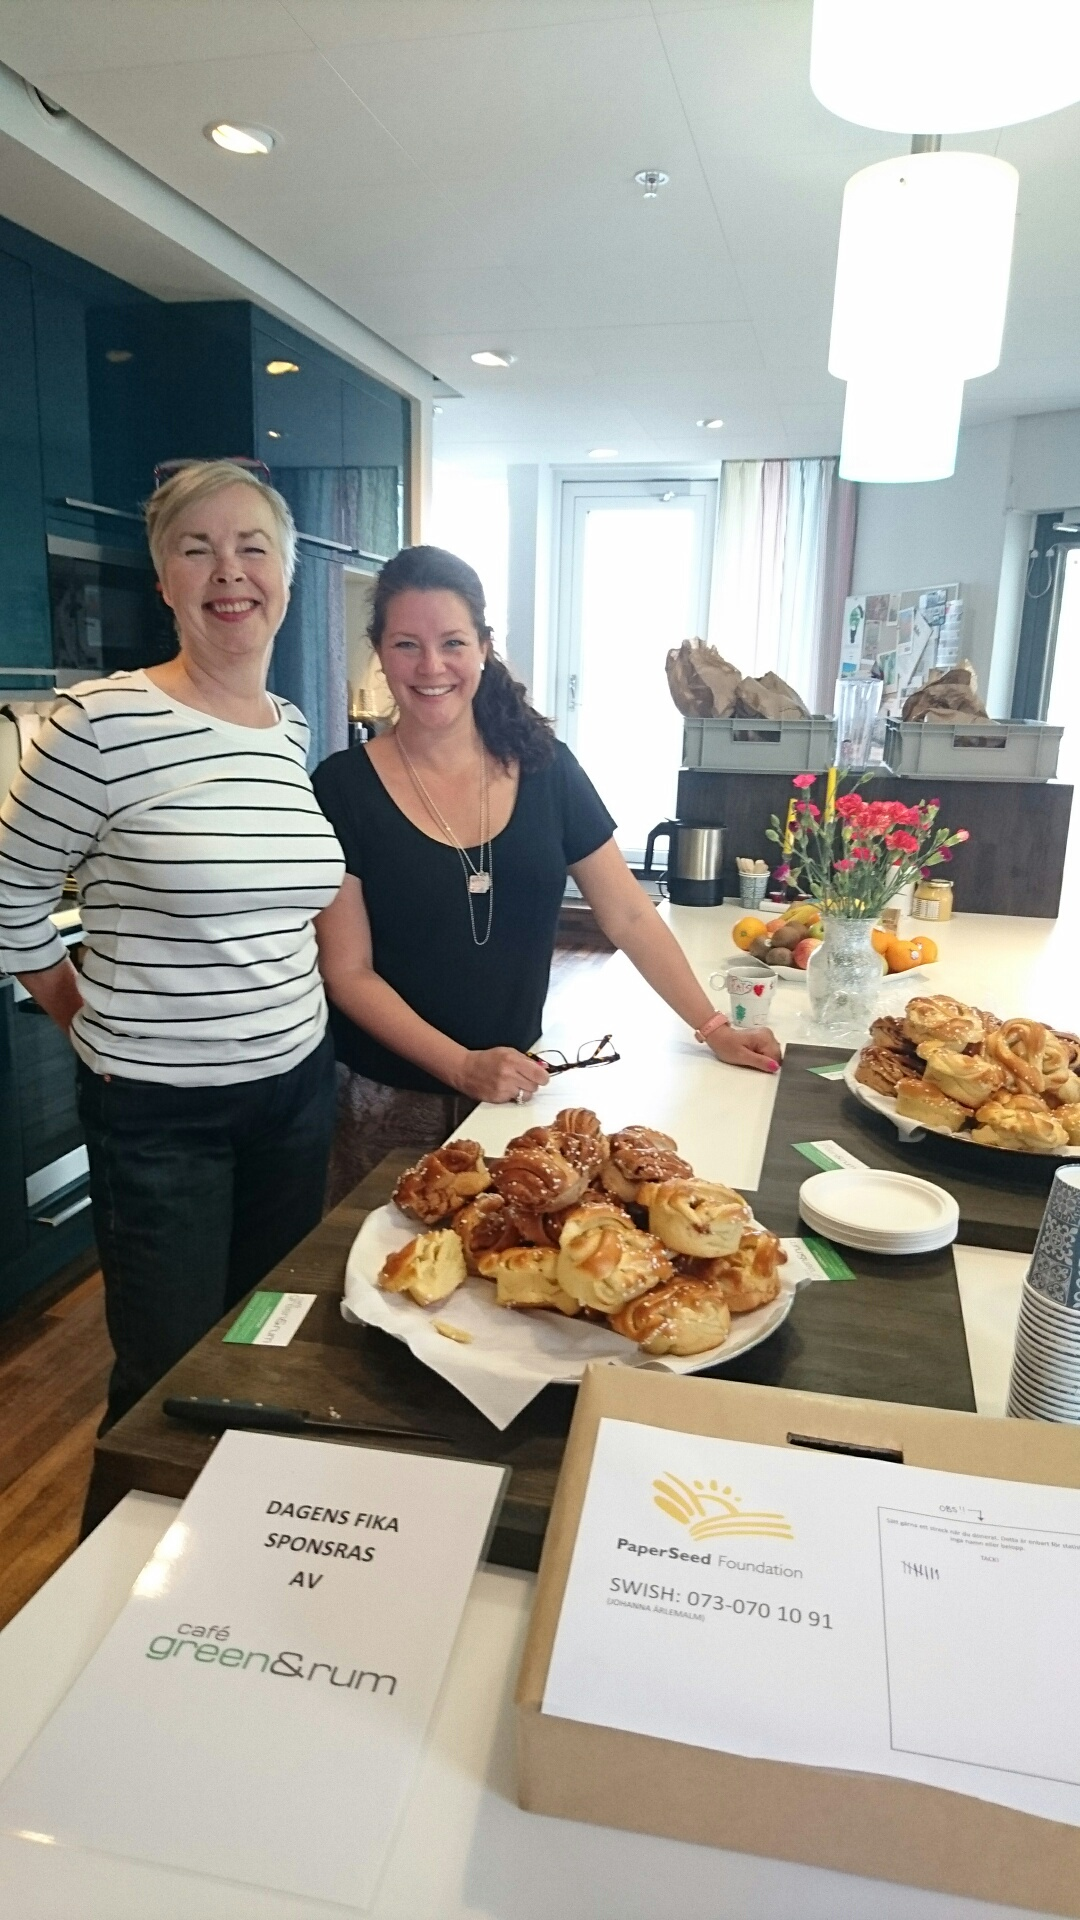 Office Fika with proceeds to benefit PaperSeed